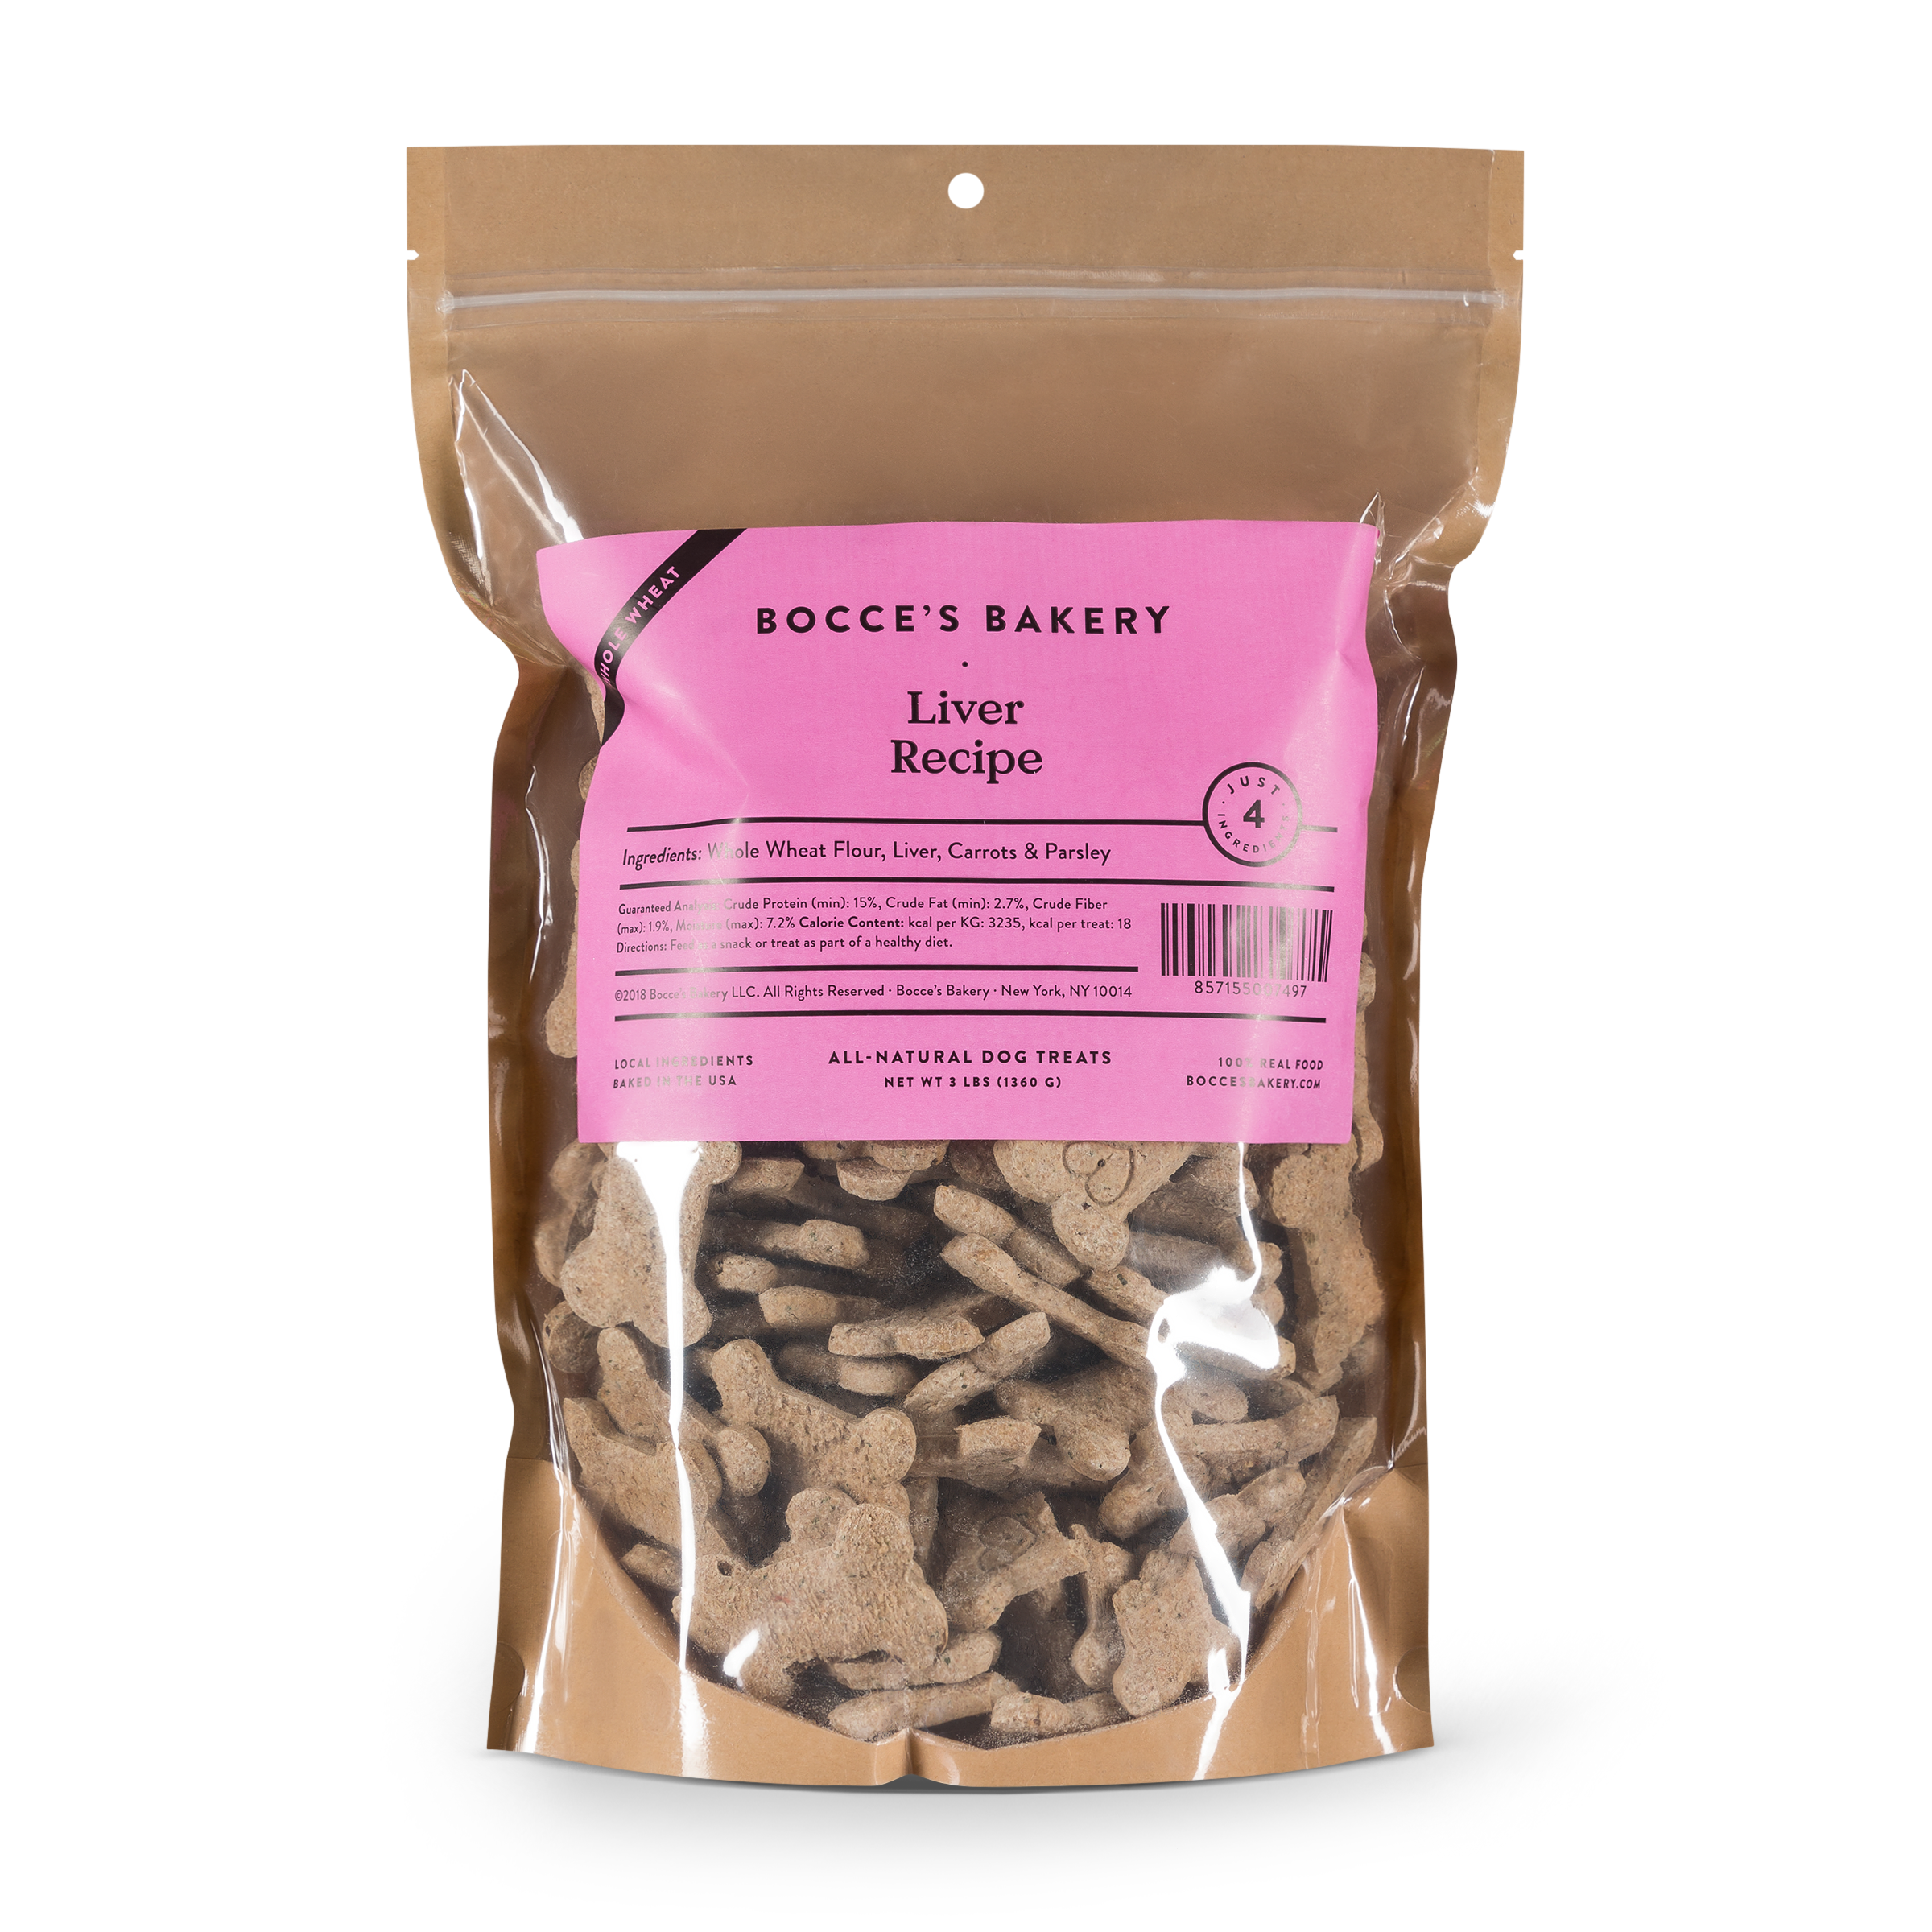 Bocce's Bakery Whole Wheat Bulk Liver Recipe Biscuit Dog Treats, 3-lb